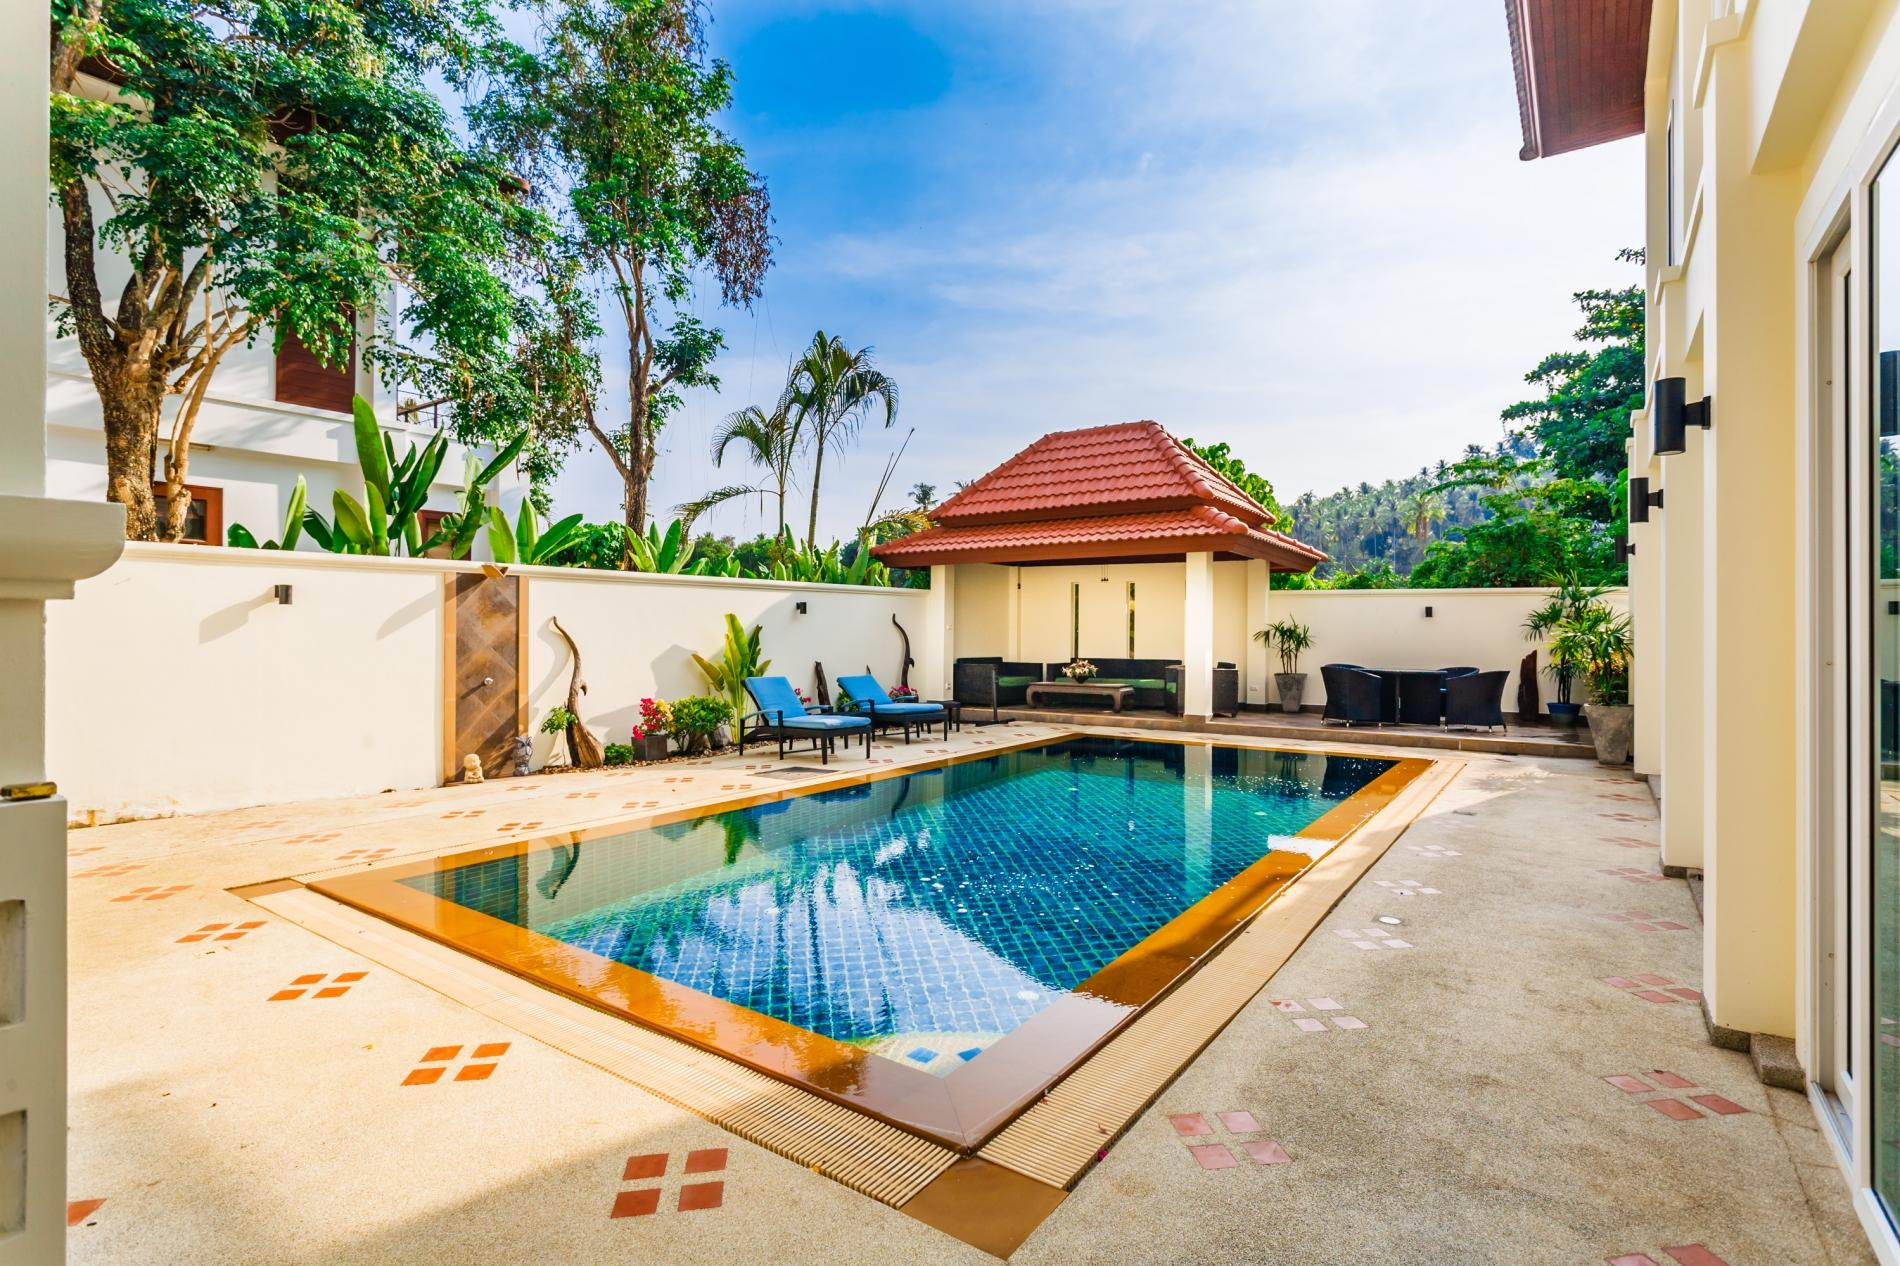 Apartment Baan Kaja villa  walk to Surin and BangTao beach  Private pool  photo 16938186